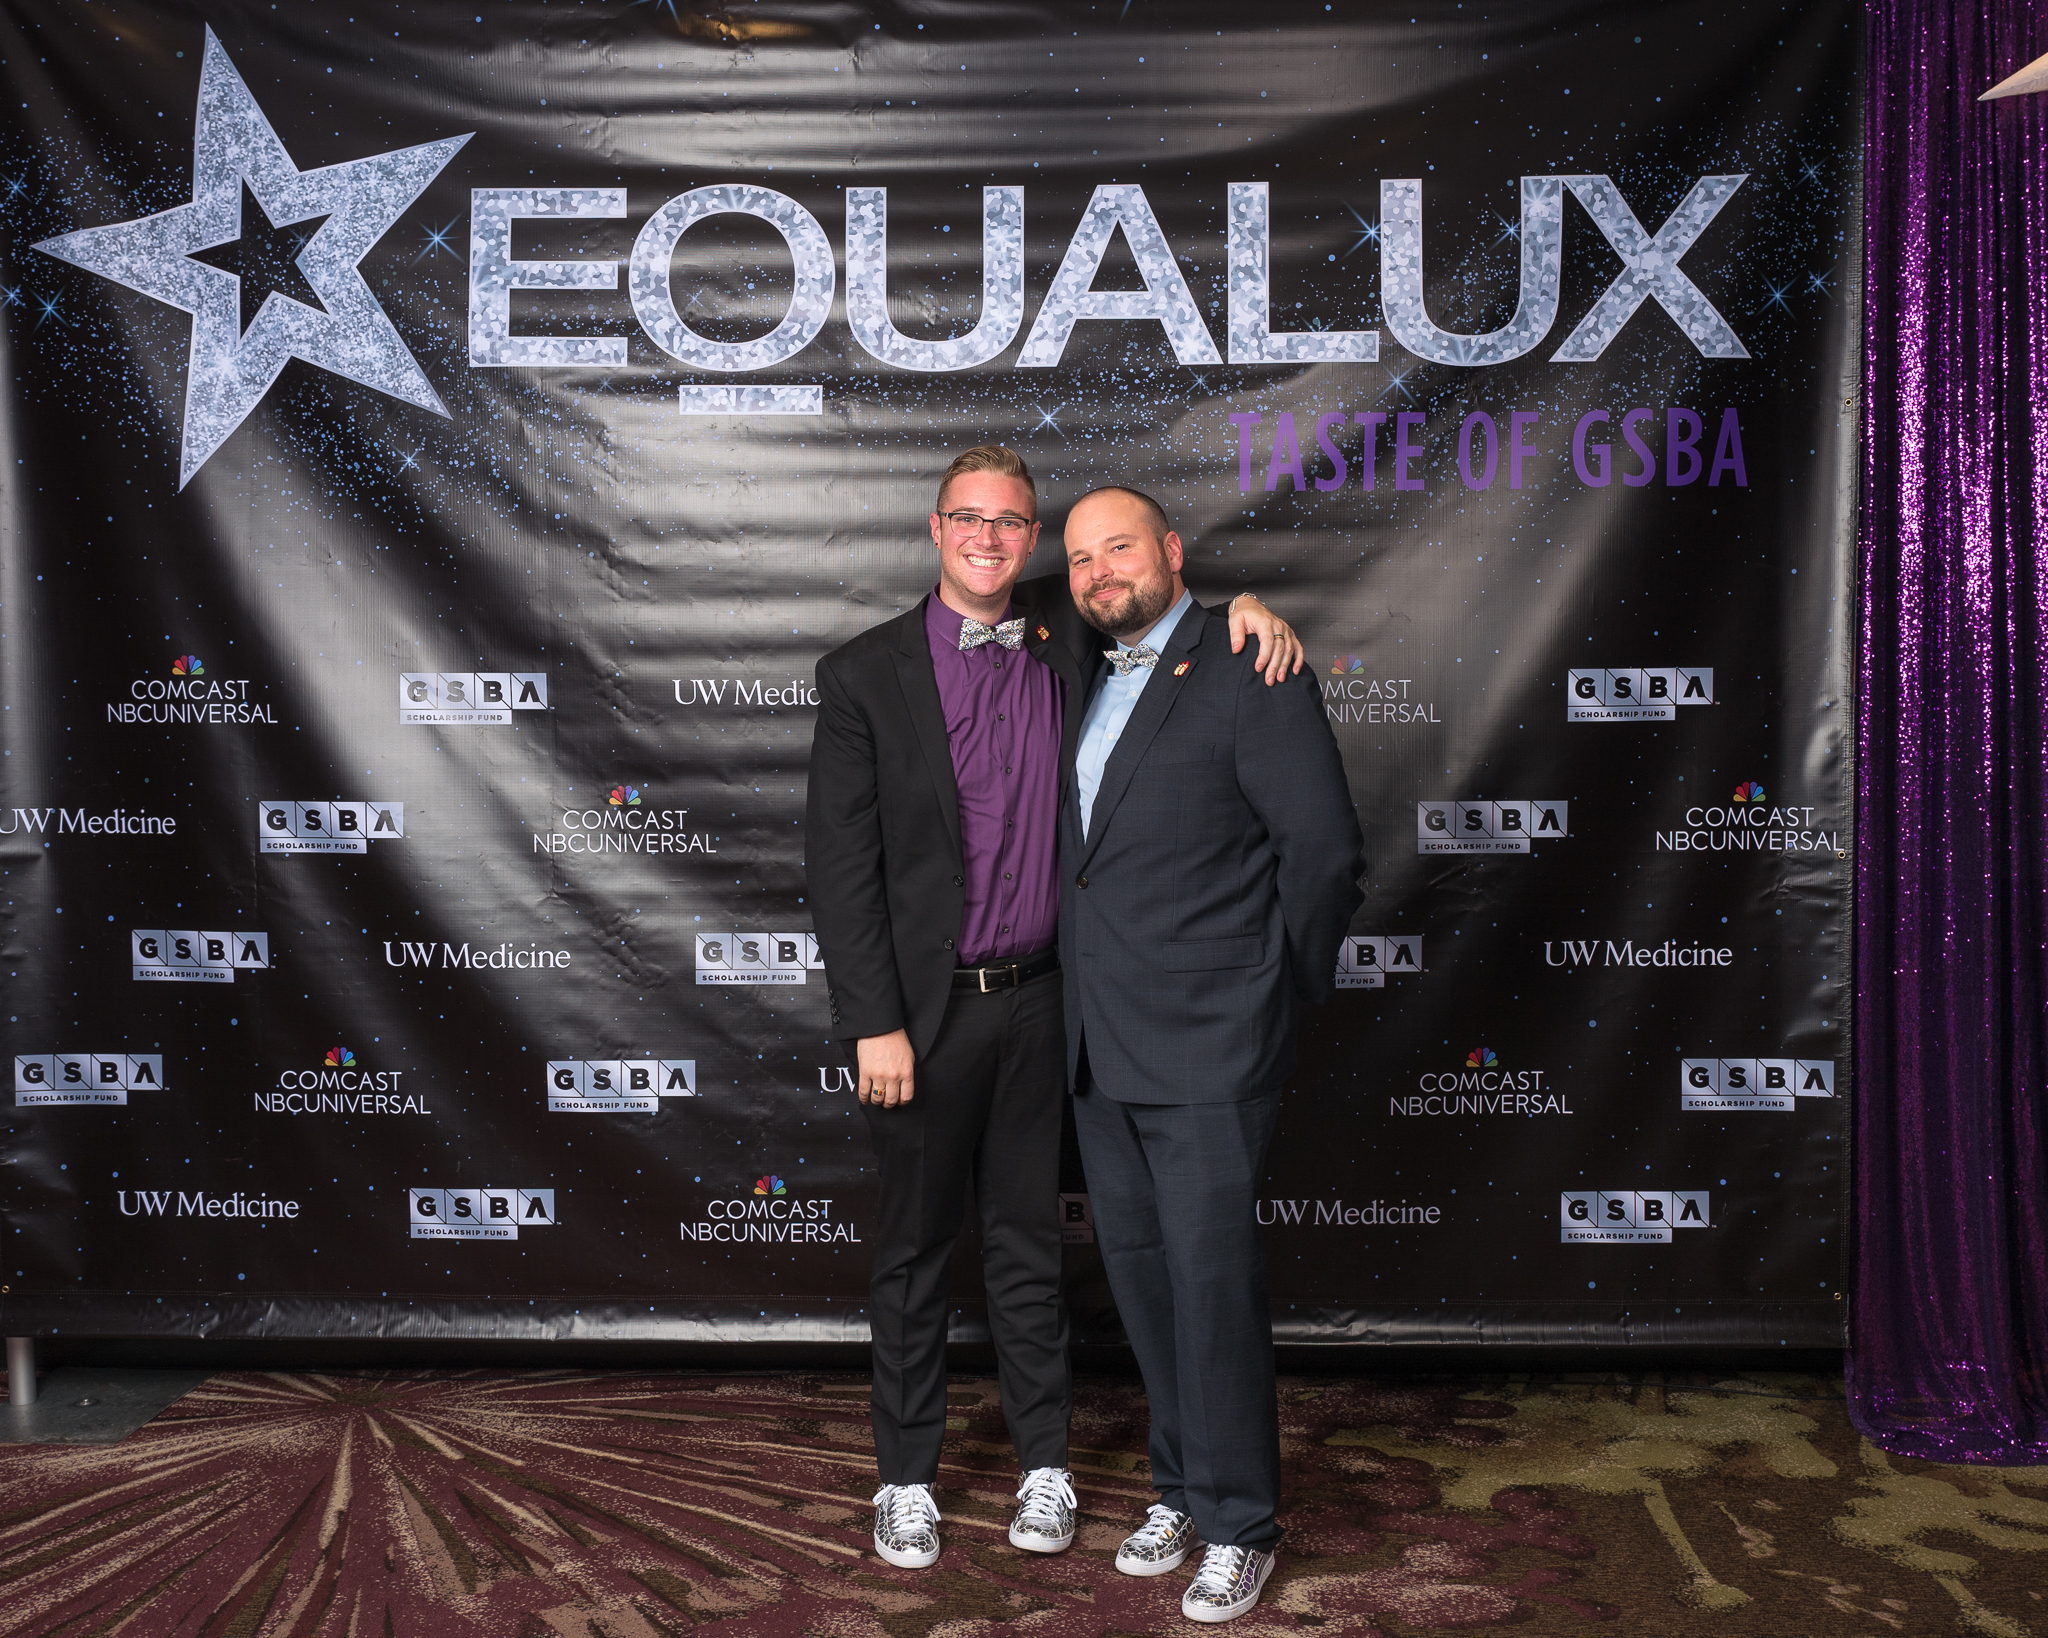 111718_GSBA EQUALUX at The Westin Seattle (Credit- Nate Gowdy)-184.jpg